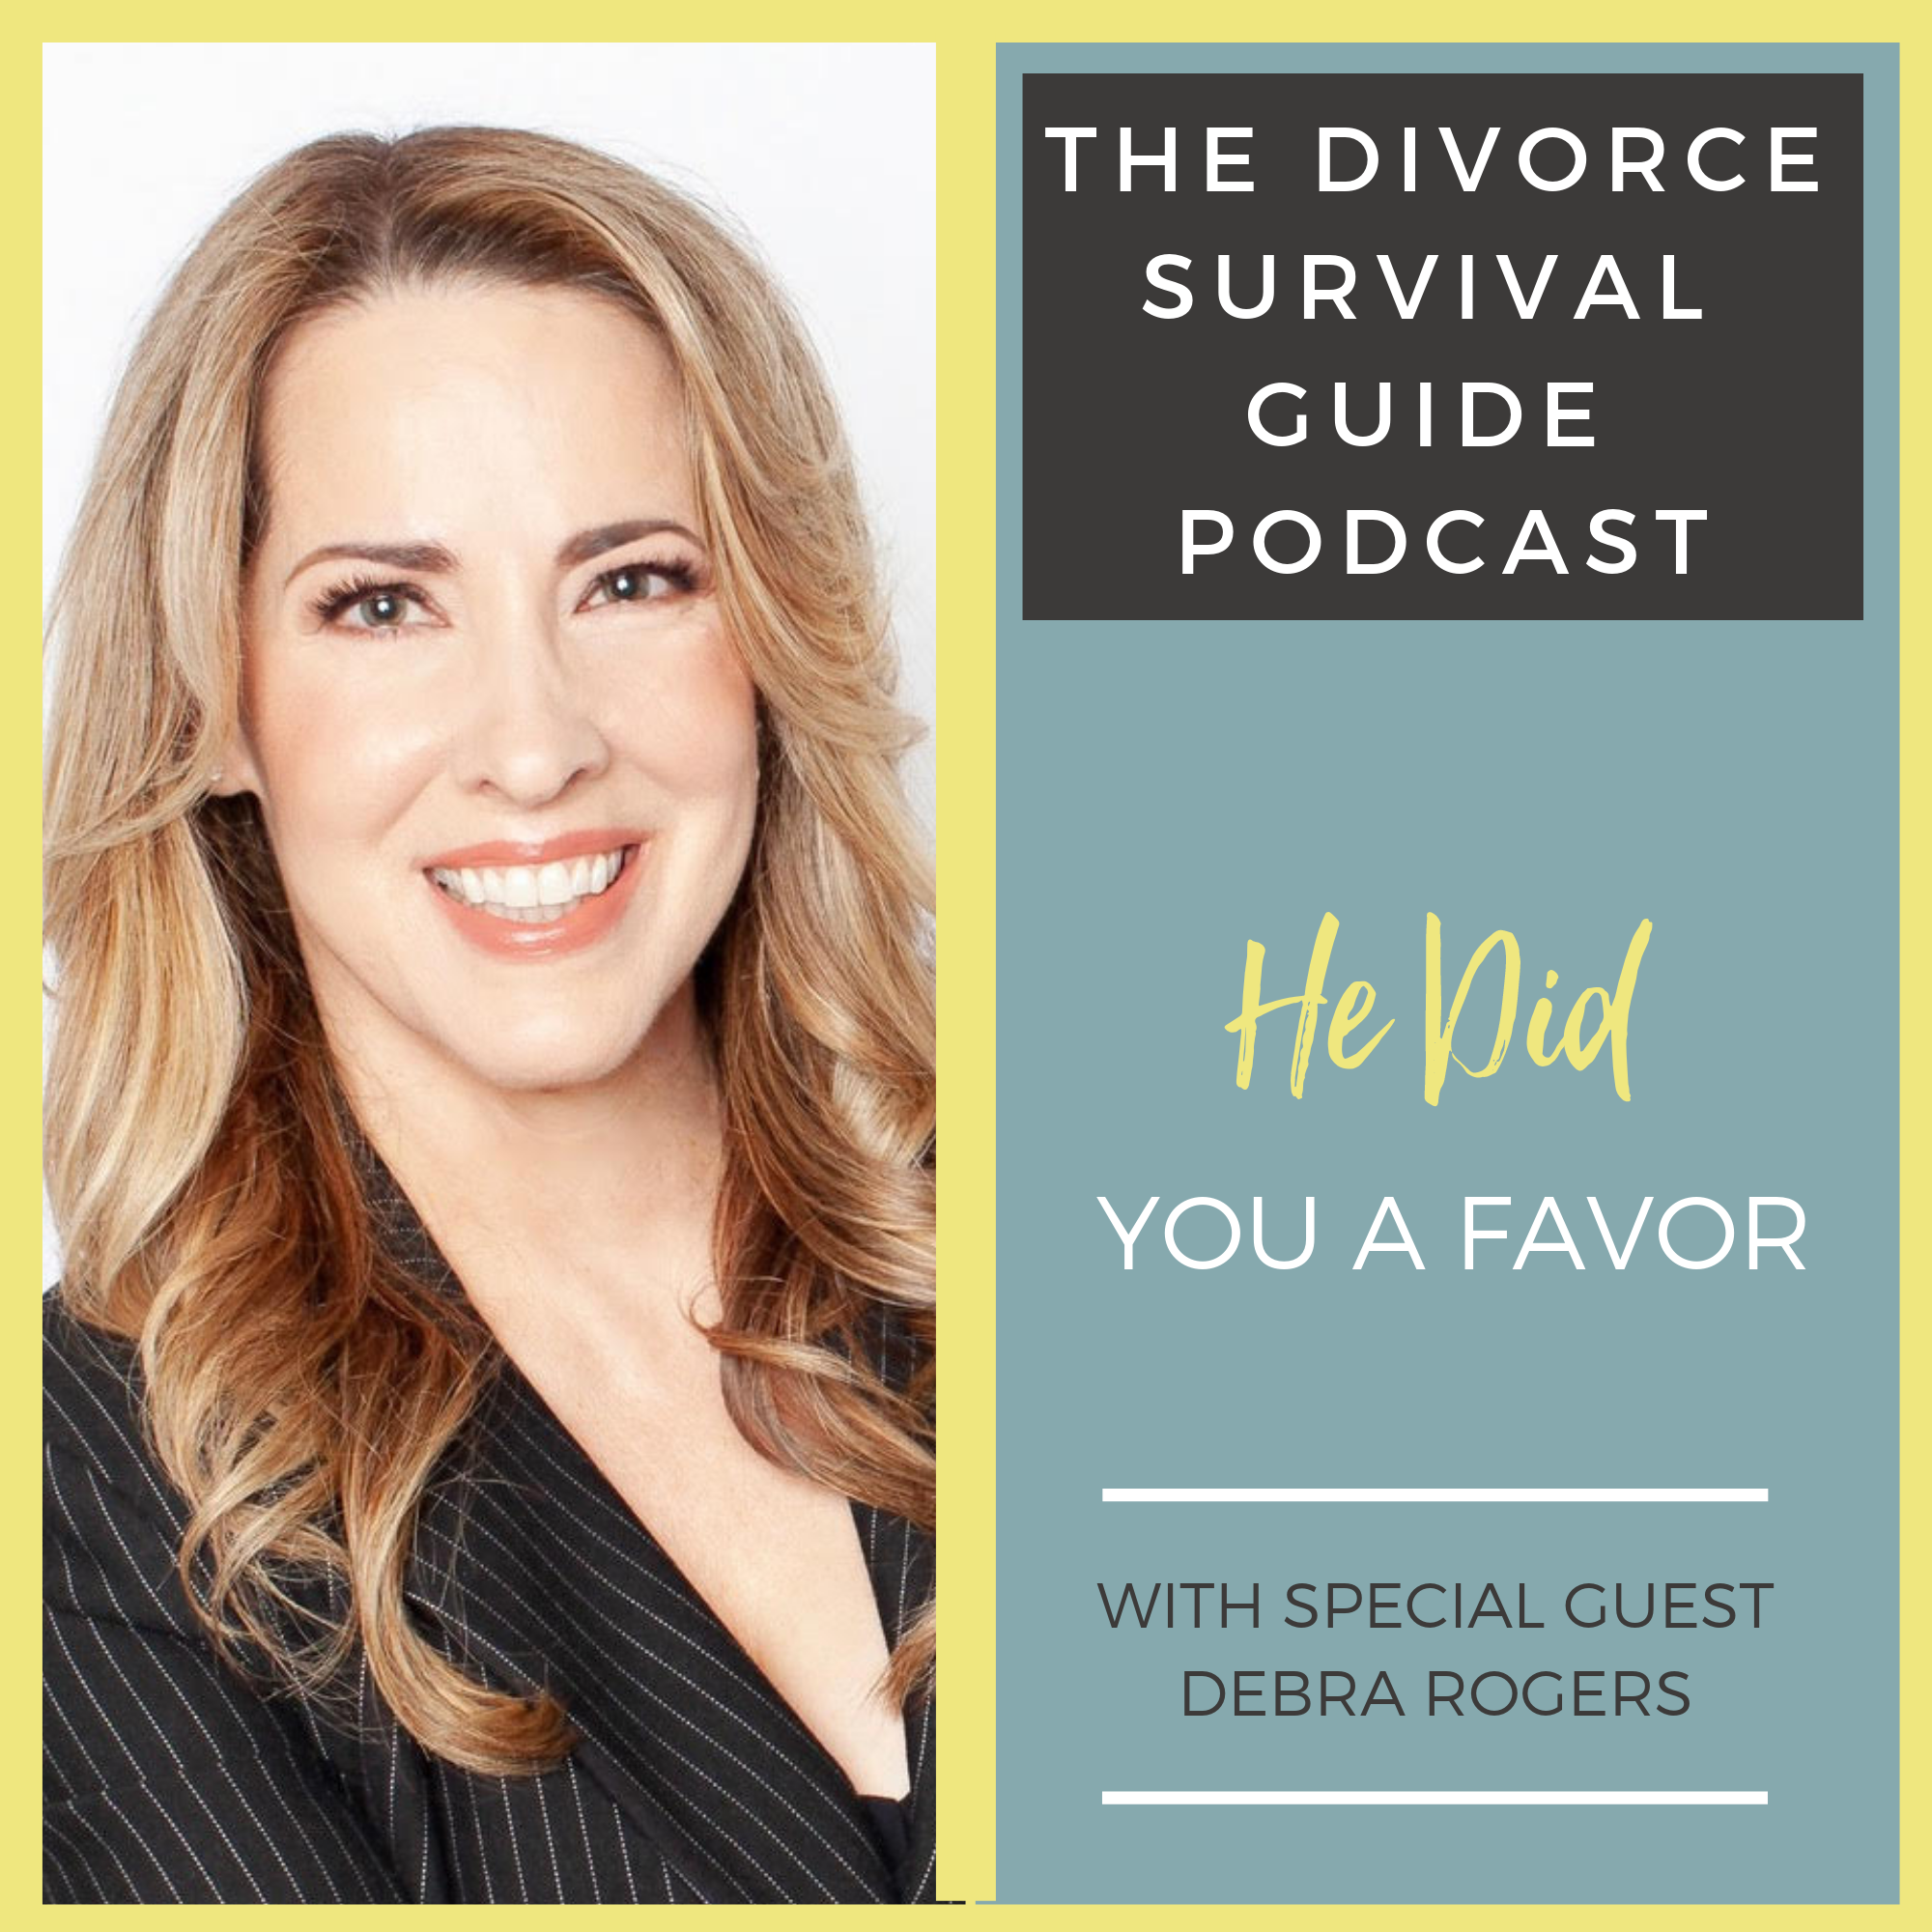 The Divorce Survival Guide Podcast - He Did You a Favor with Debra Rogers